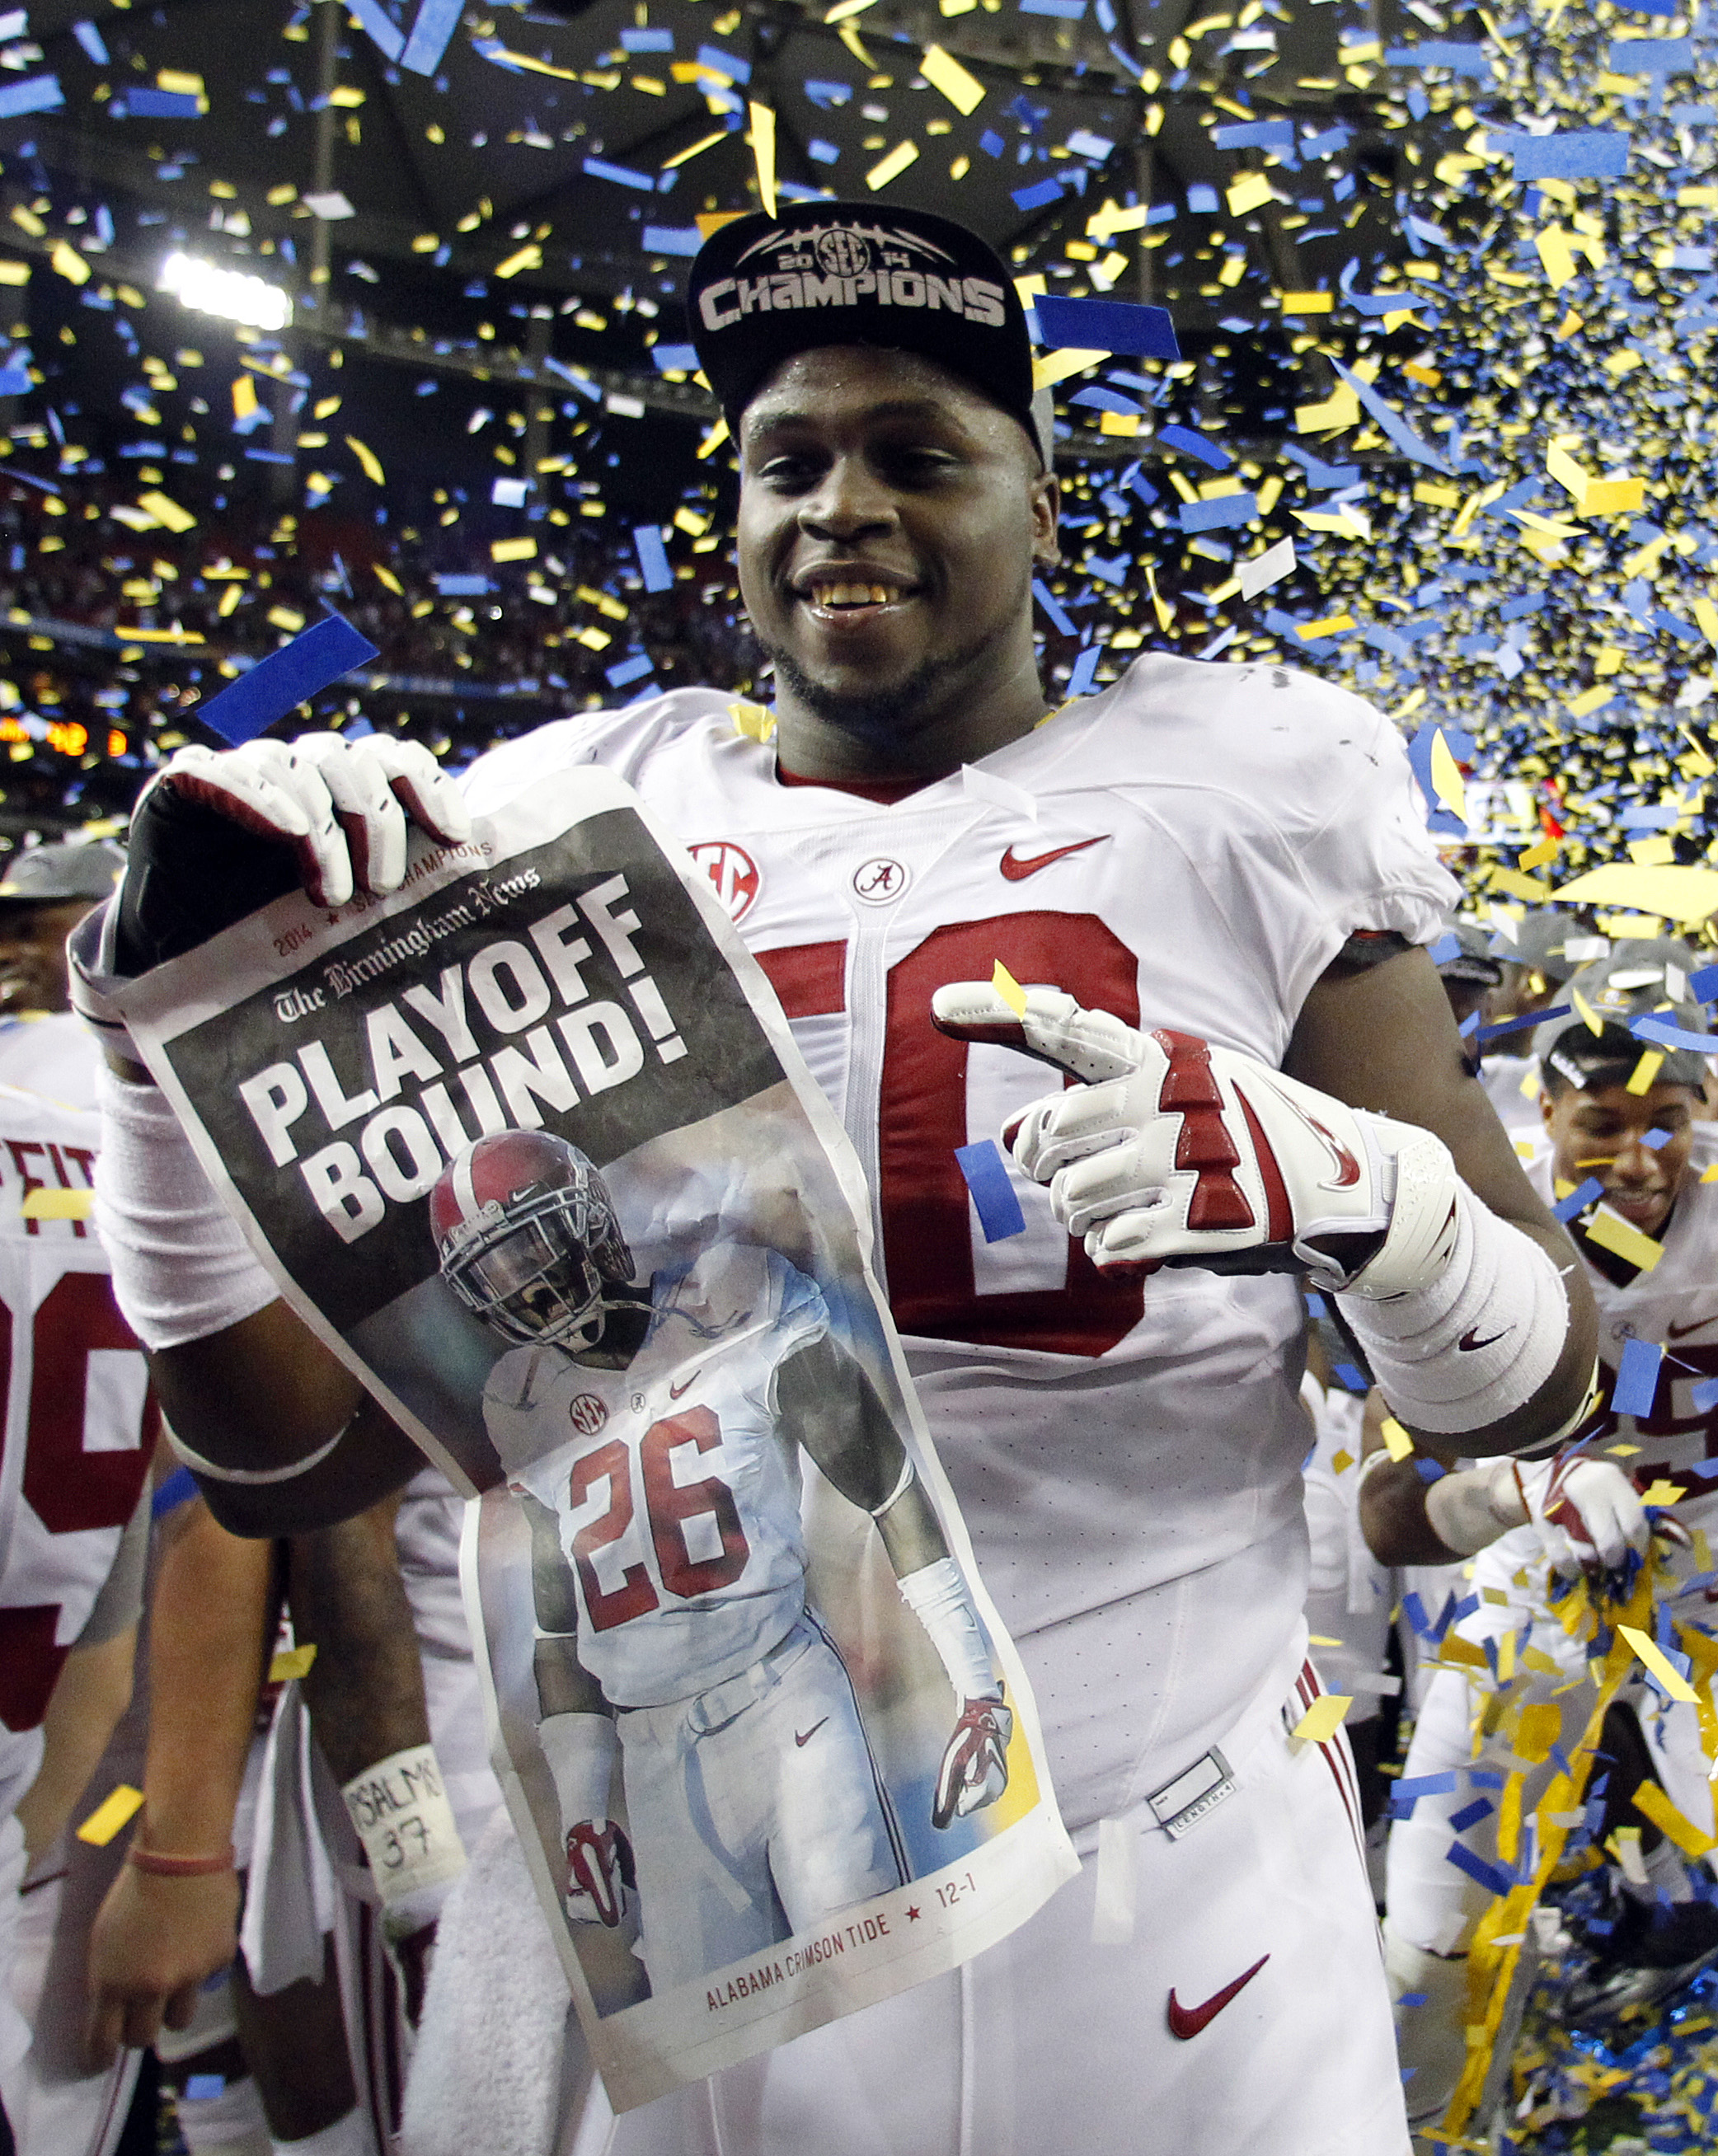 Alabama offensive lineman Alphonse Taylor (50) celebrates the win over Missouri in an NCAA college football game Saturday, Dec. 6, 2014, in Atlanta, Ga. (AP Photo/Butch Dill)